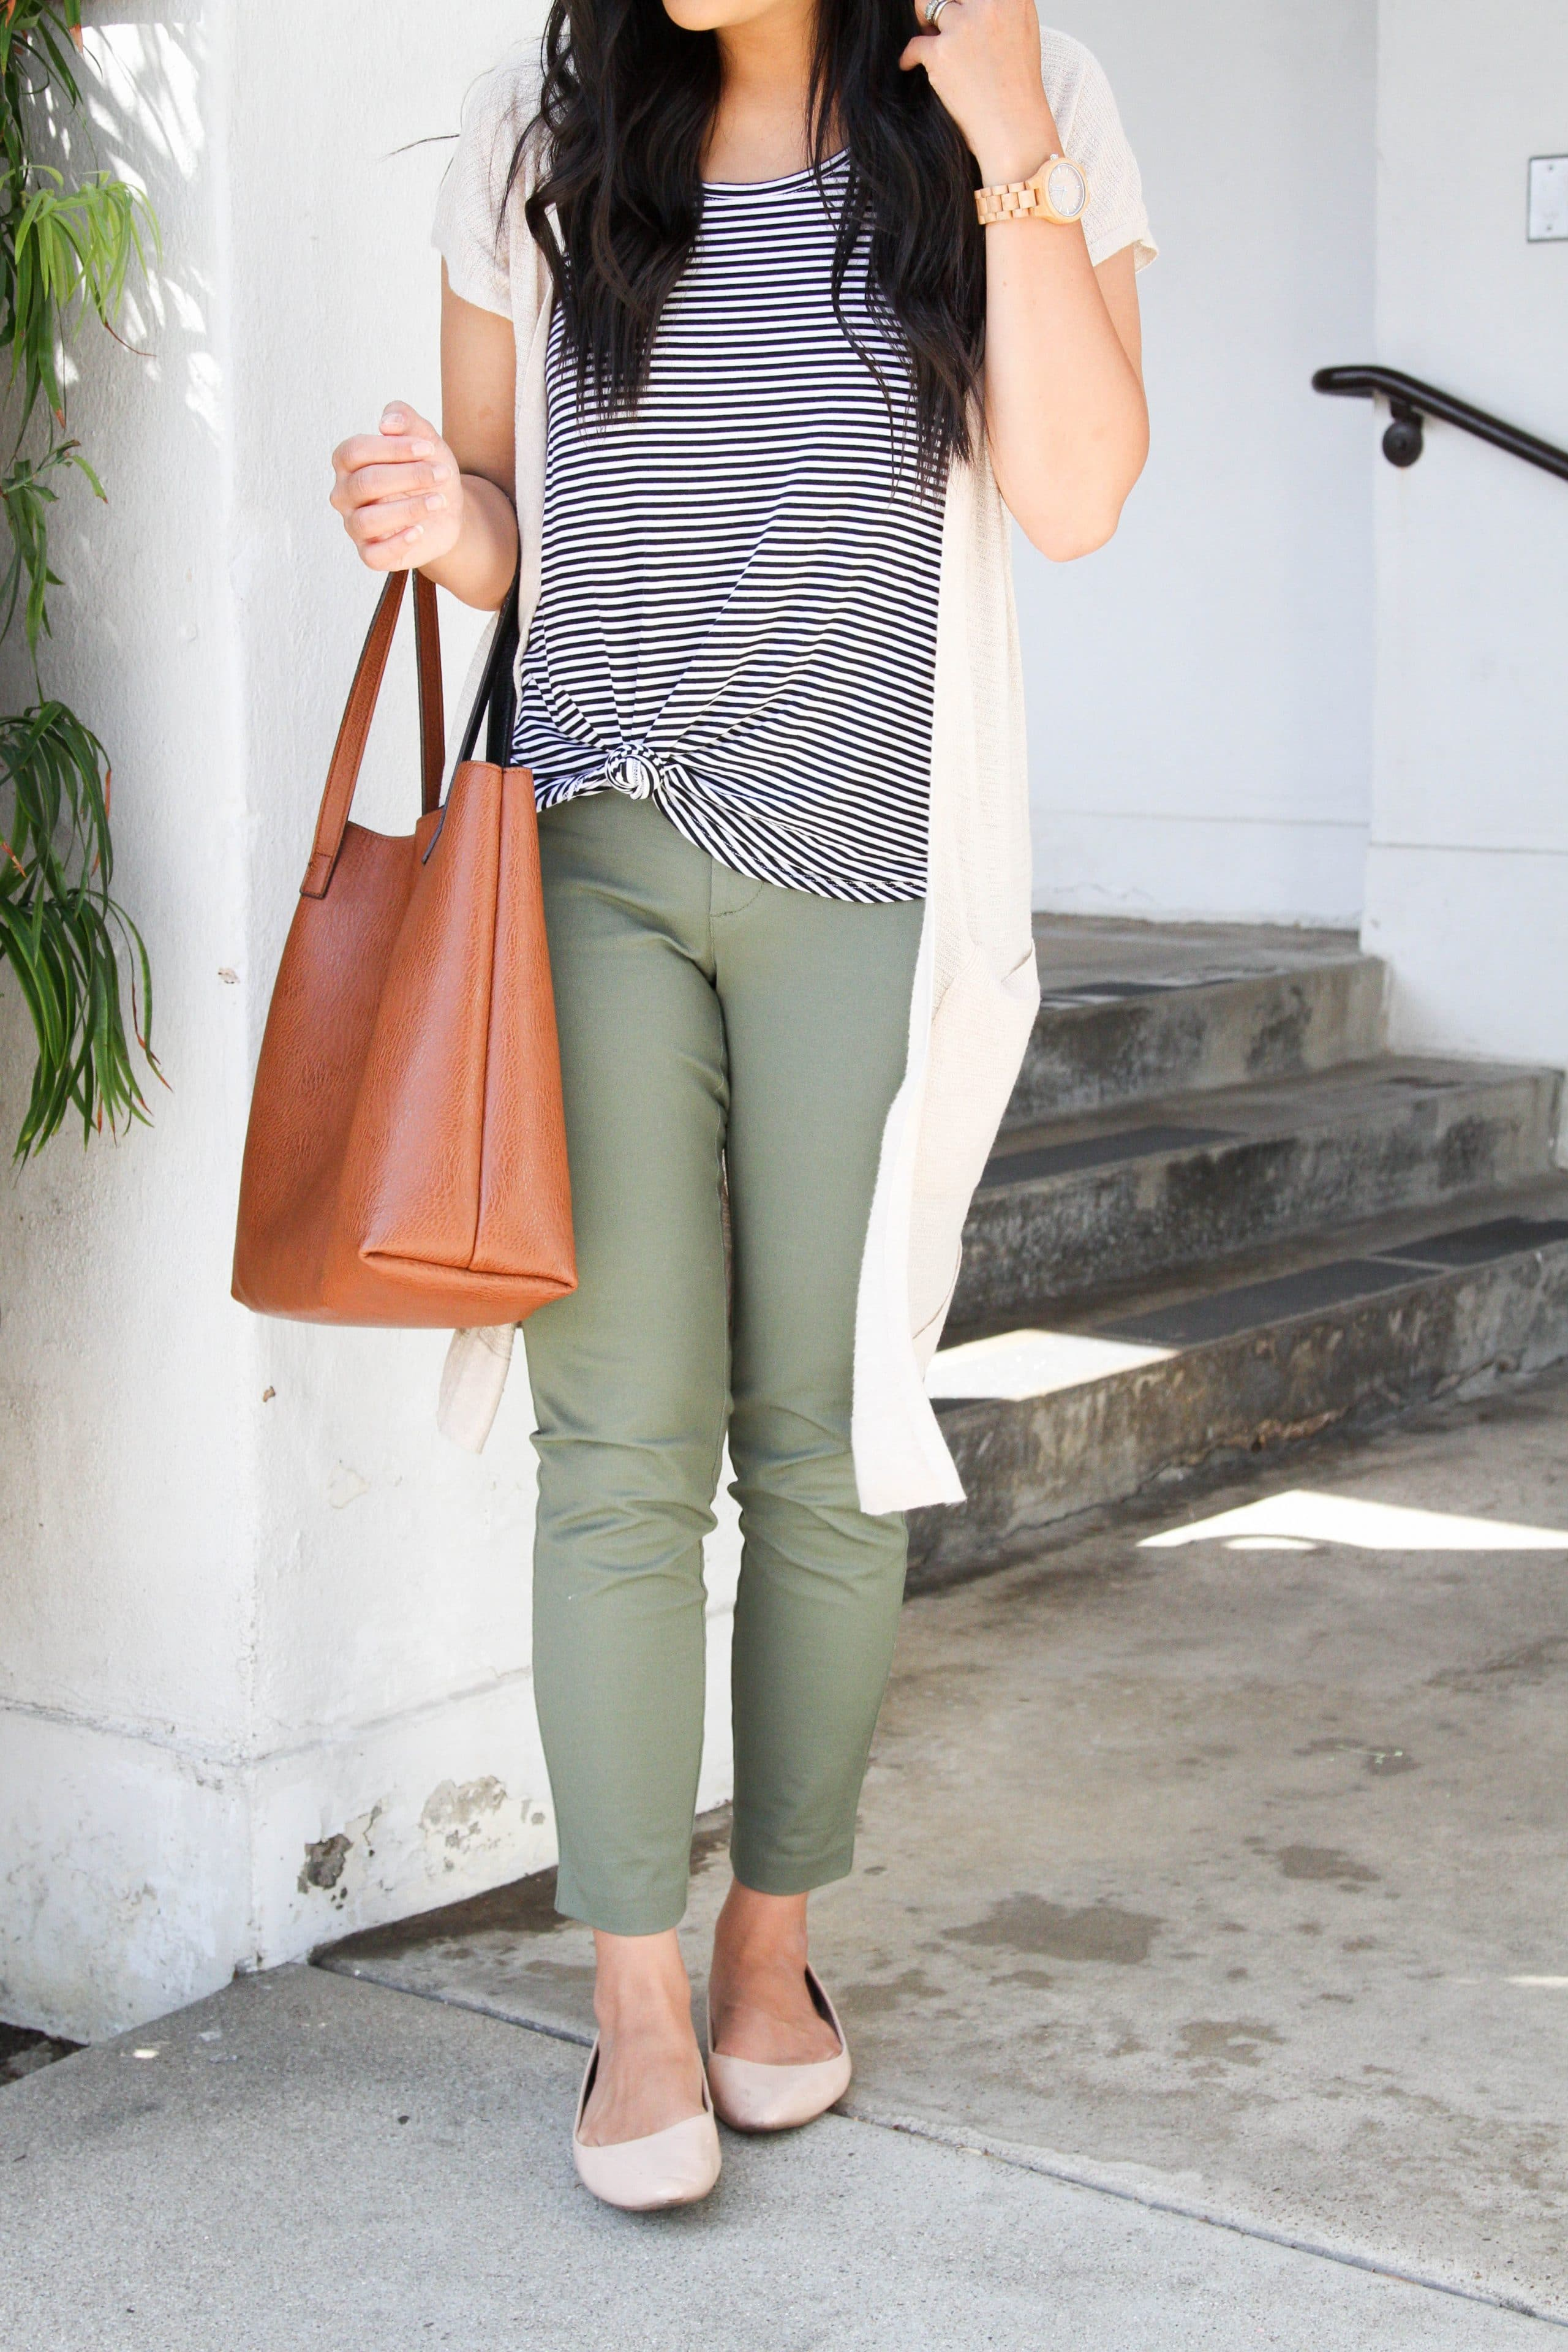 Green Chinos + Short sleeve cardigan + Striped tee + Cognac Bag + Nude Flats